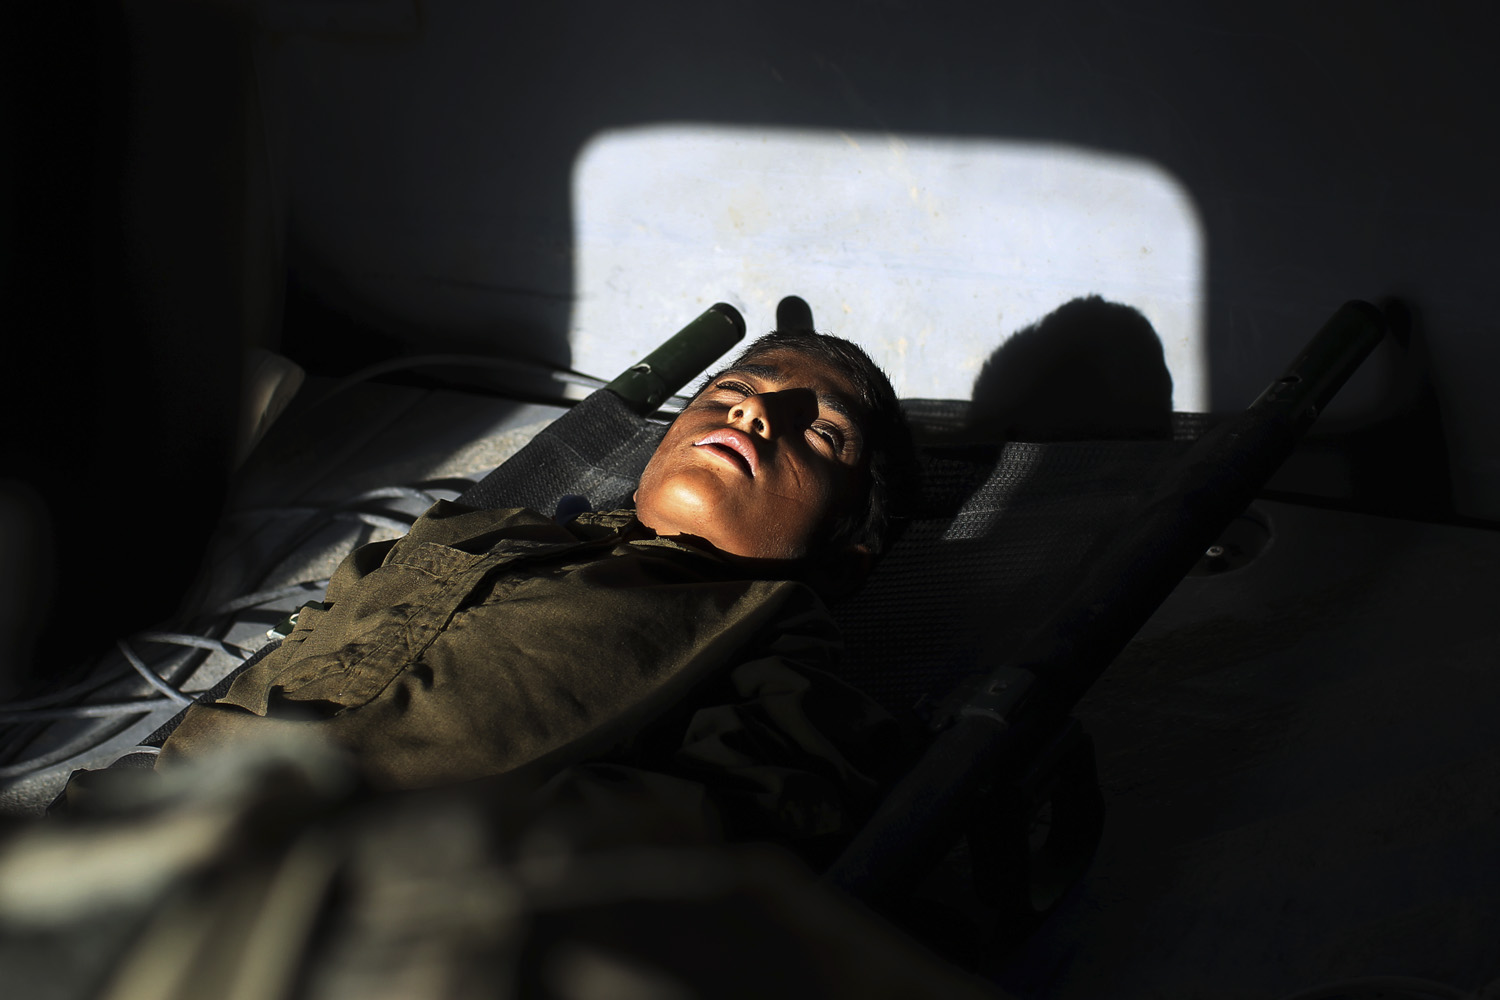 May 11, 2011. A young Afghan boy who was shot in the stomach lays on a stretcher as he is taken to hospital in a medevac helicopter in the volatile Helmand Province of southern Afghanistan.